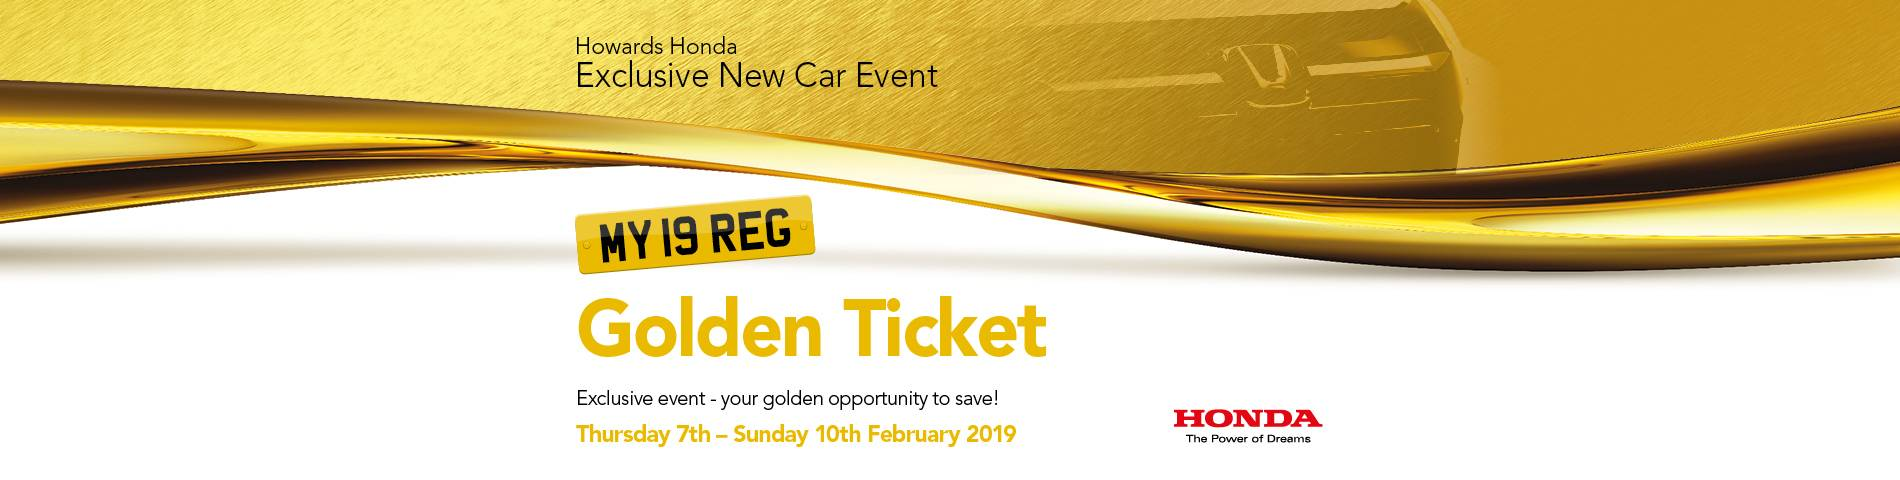 Honda Golden Ticket